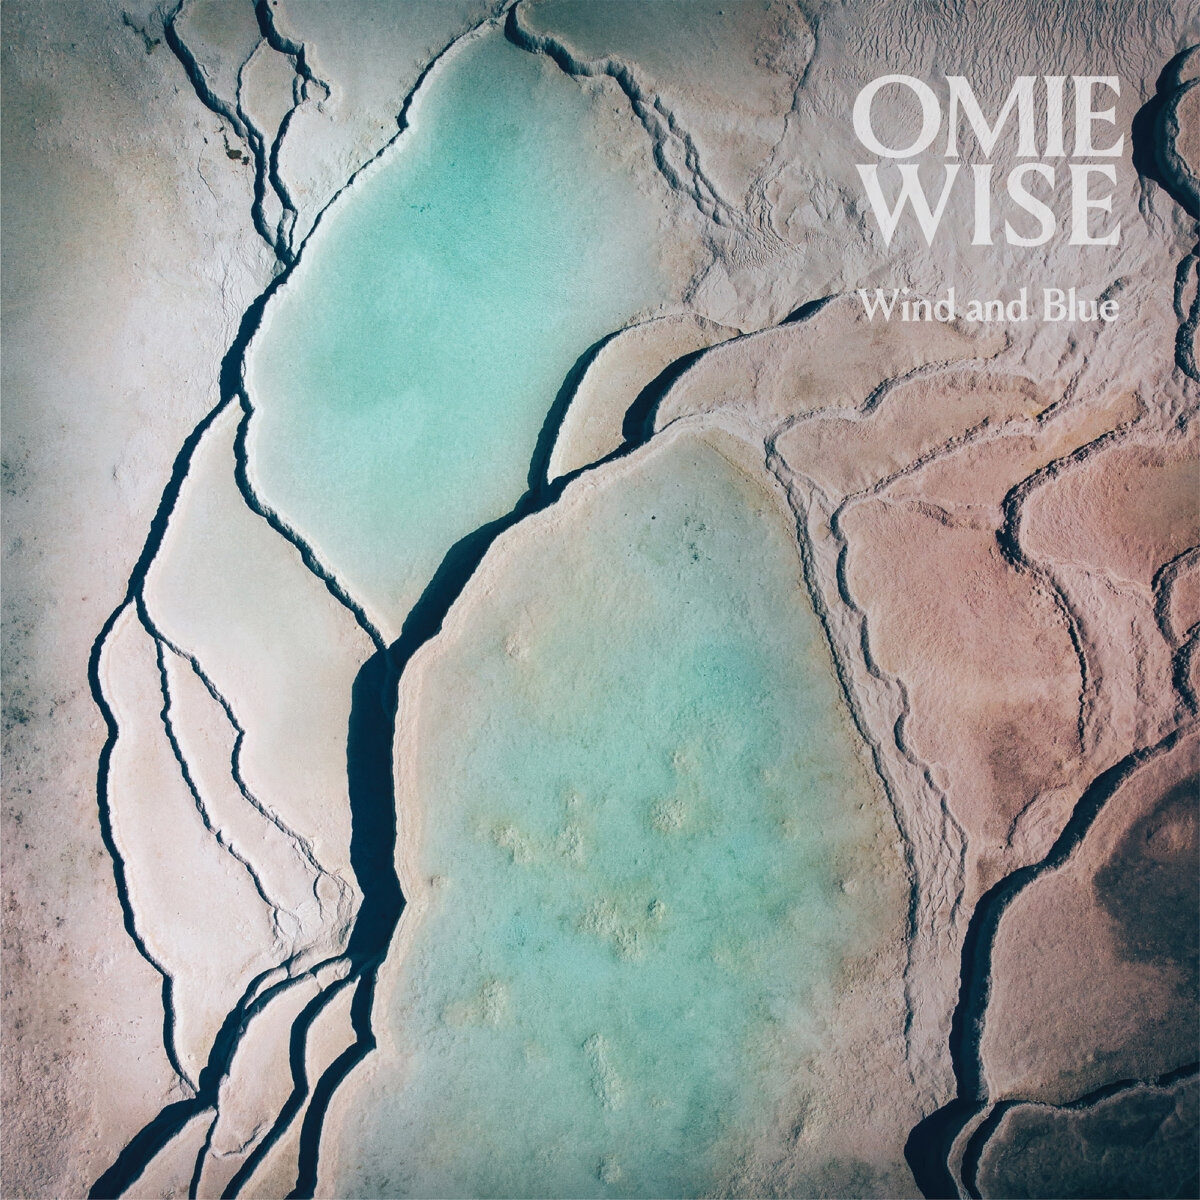 Omie Wise - Wind and Blue